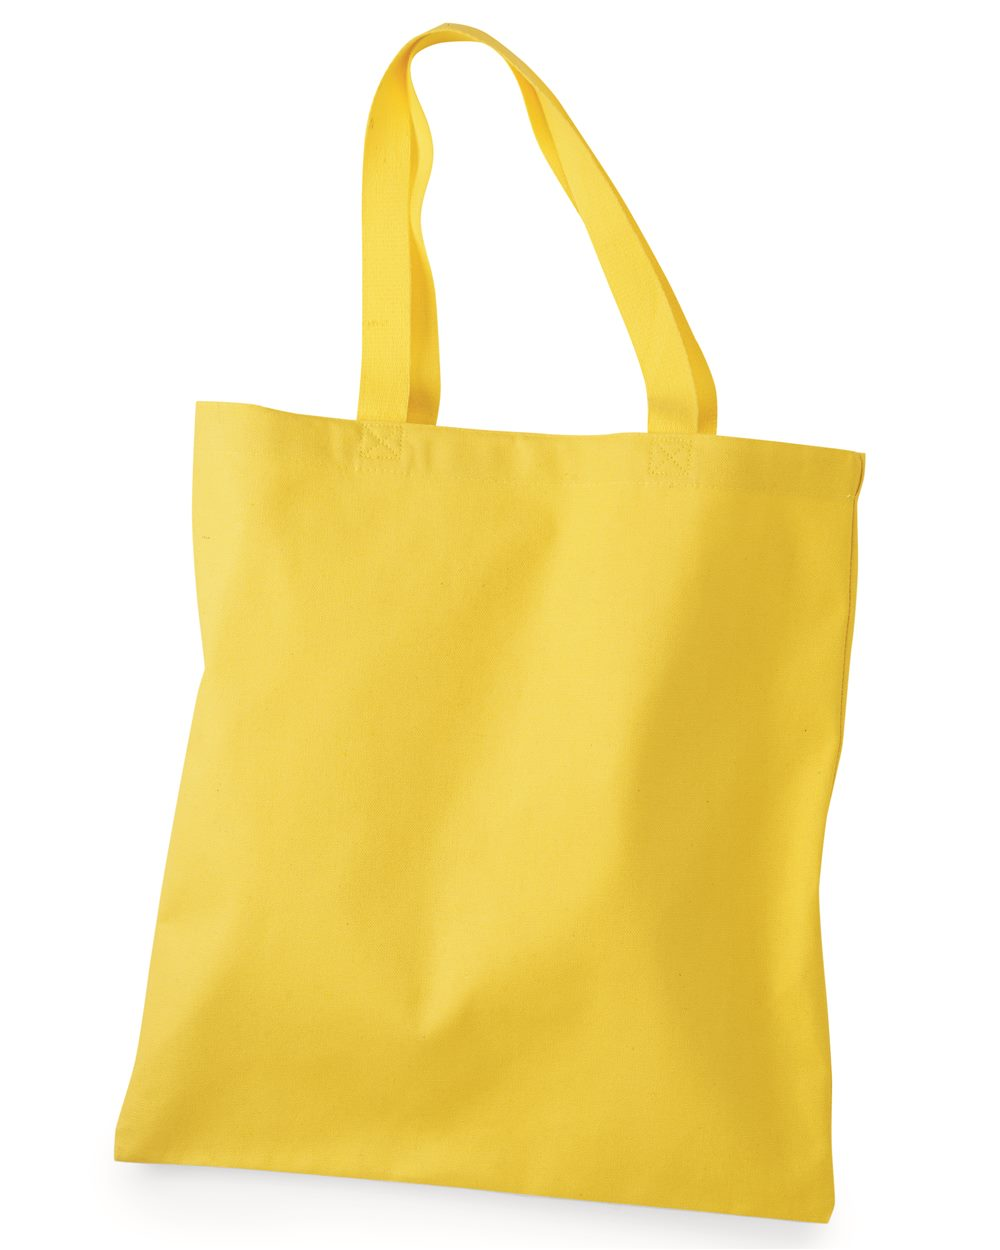 Valubag Q800 - Canvas Promotional Tote